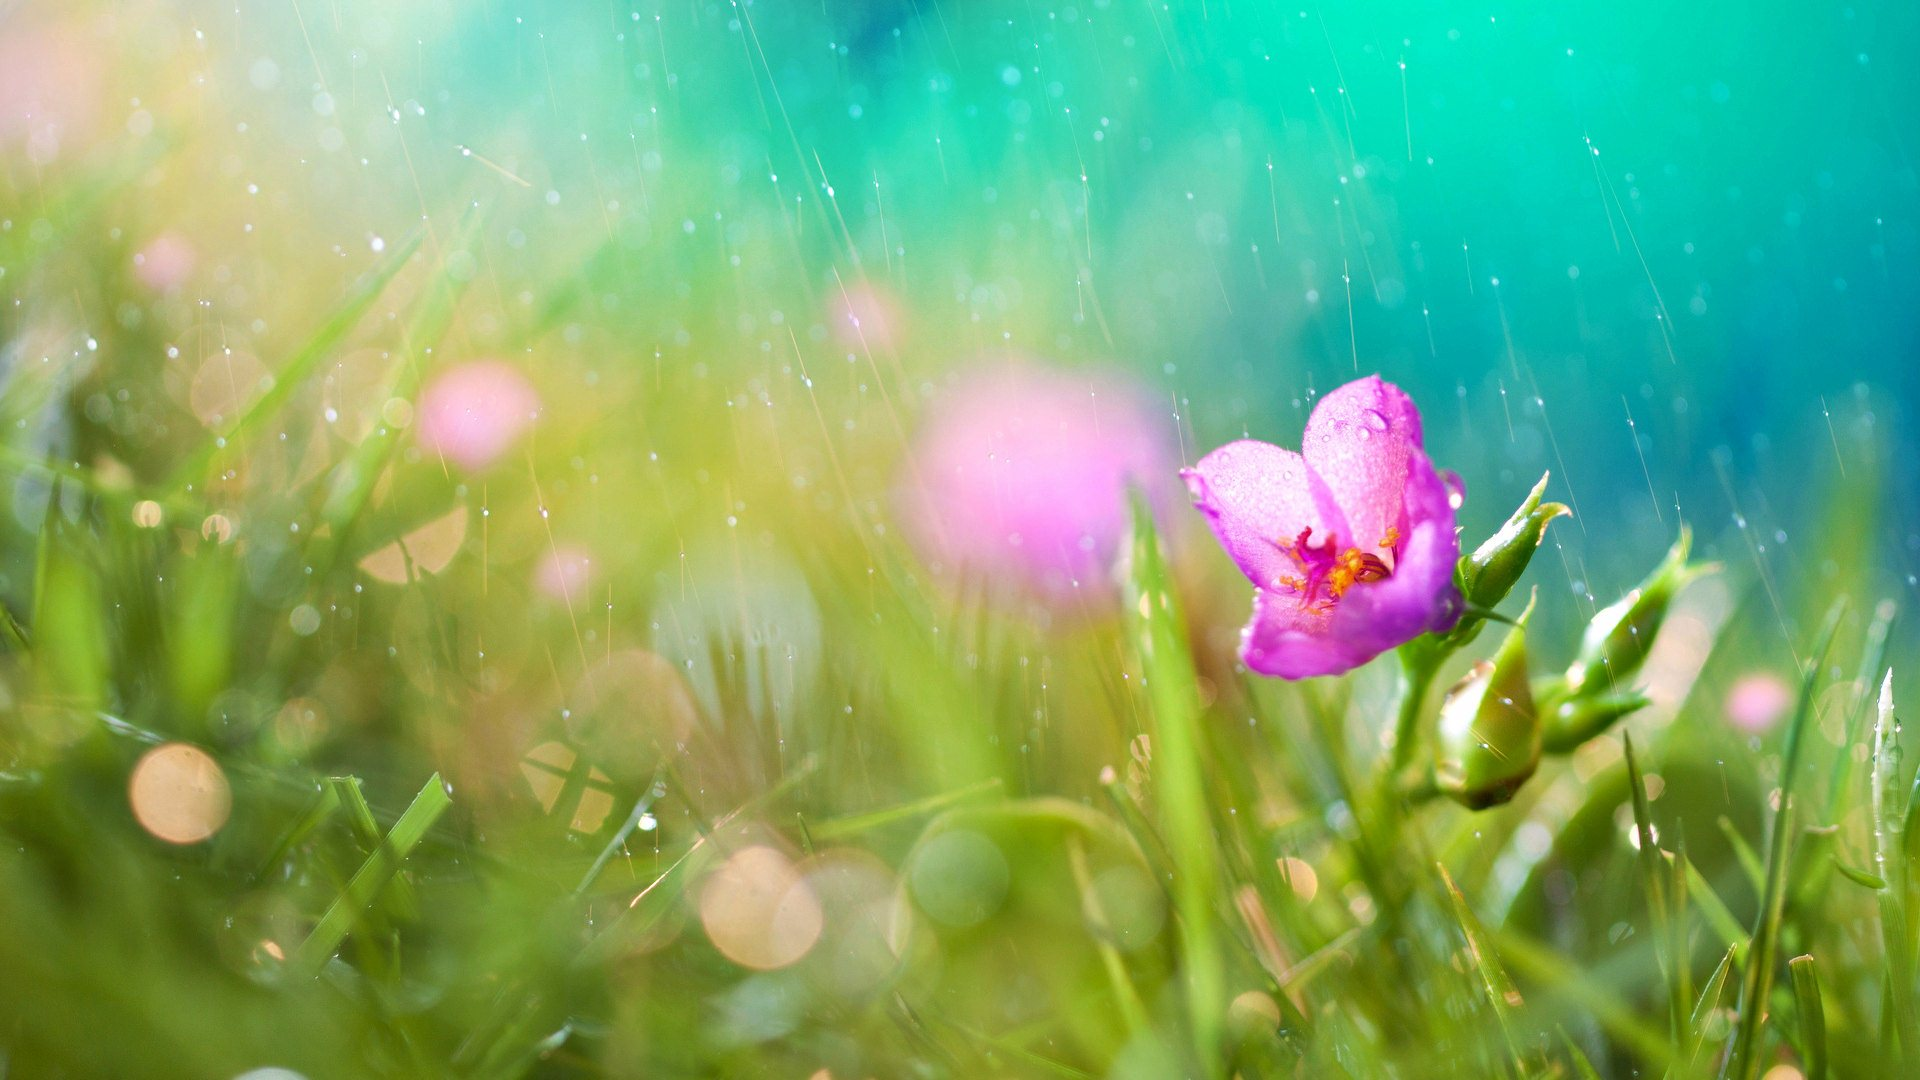 Rainy Day HD Wallpapers Pictures Images Backgrounds Photos 1920x1080